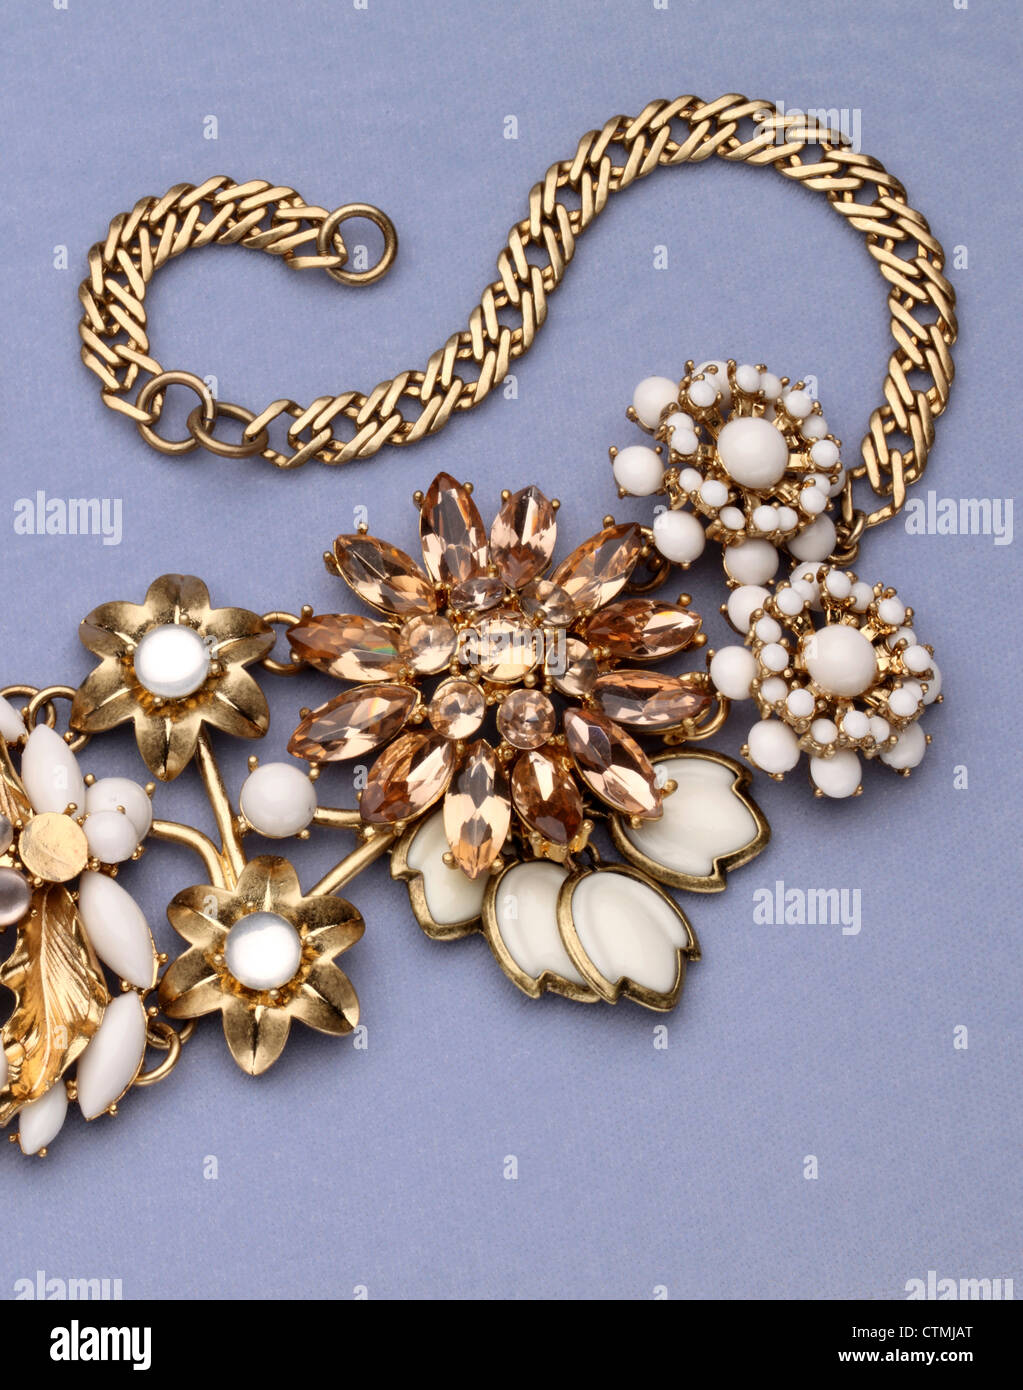 Costume jewelry. A large gold necklace with flowers. - Stock Image